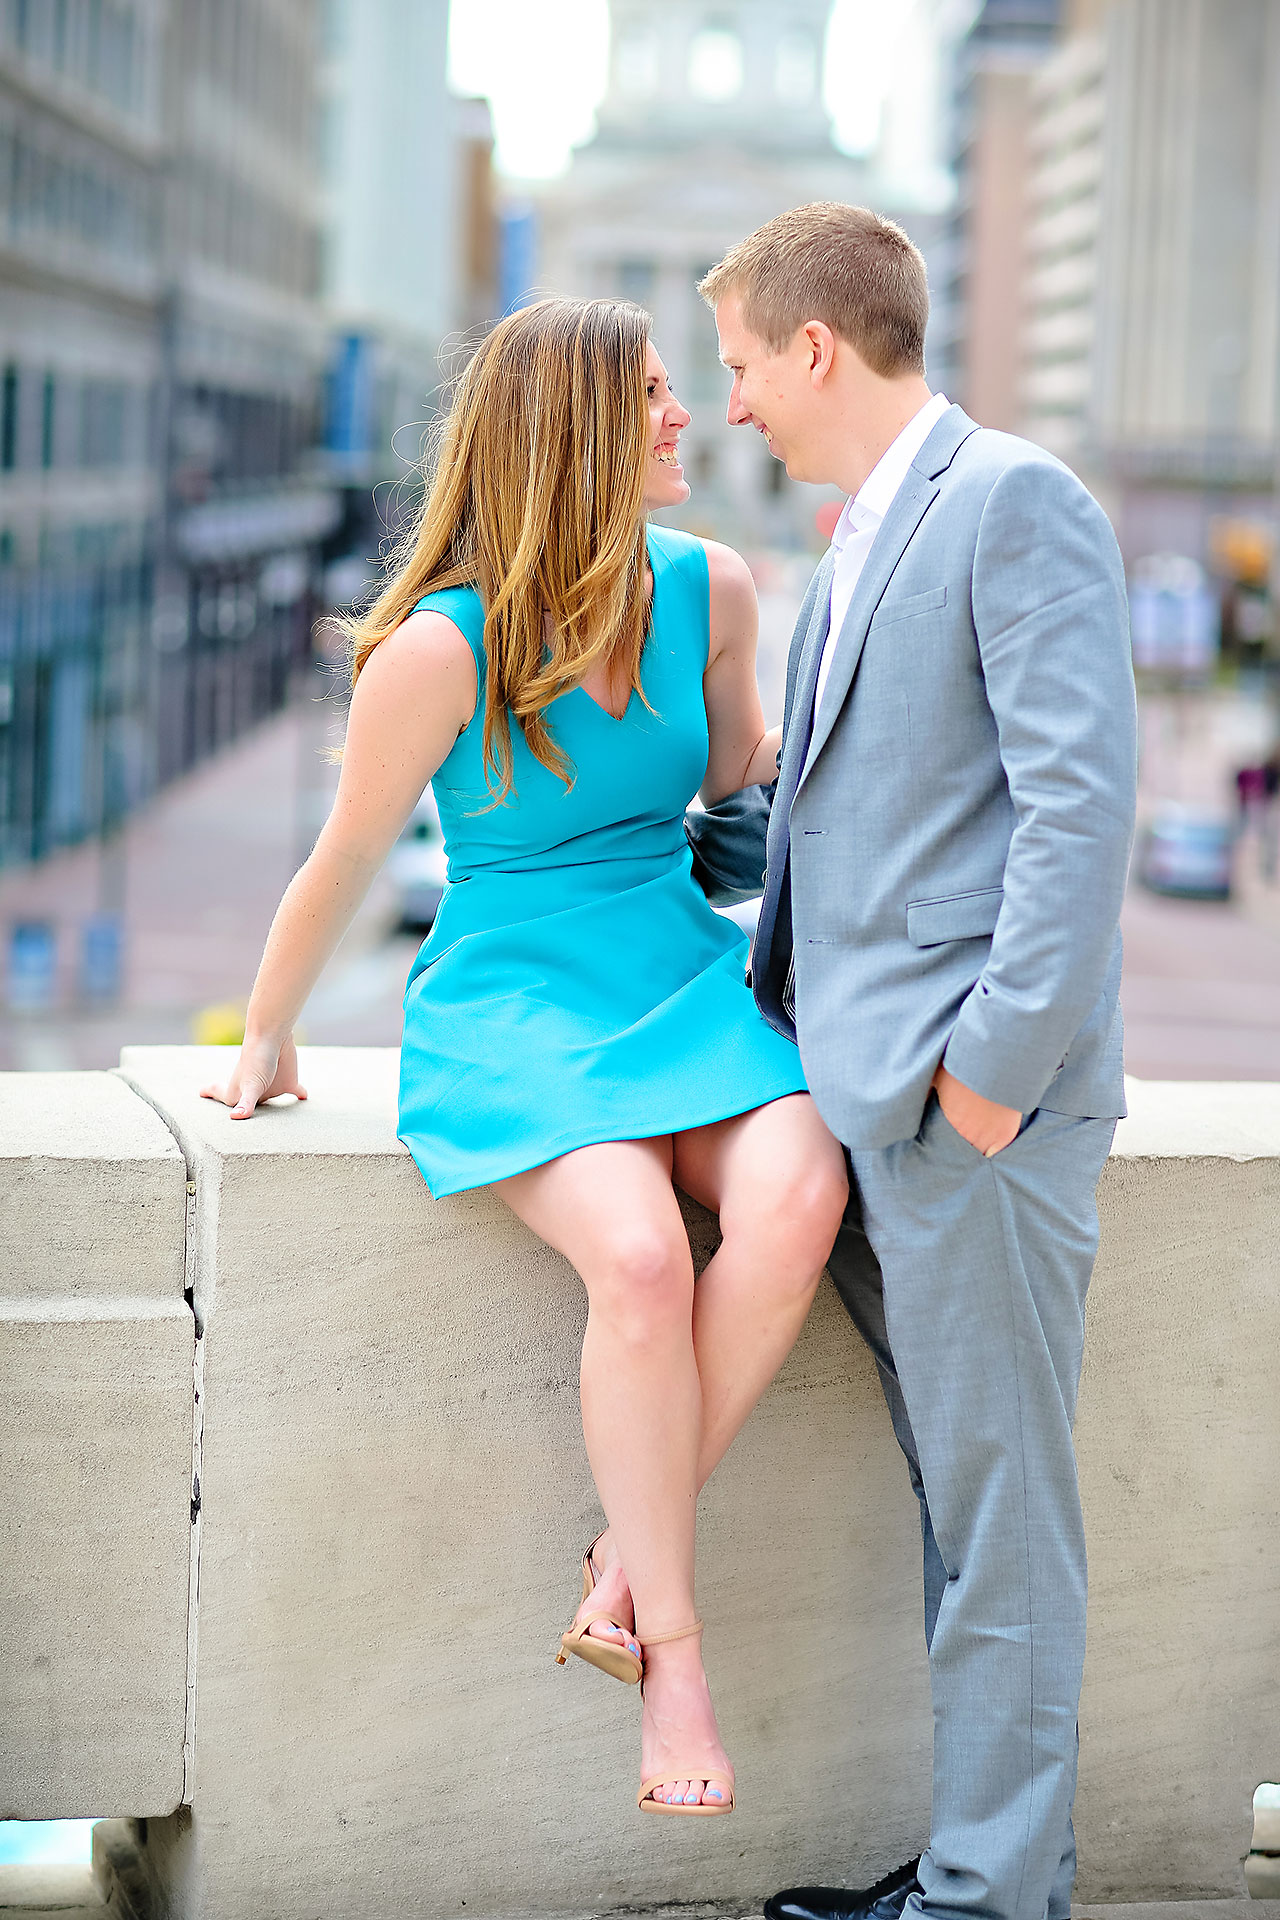 Chelsea Jeff Downtown Indy Engagement Session 080